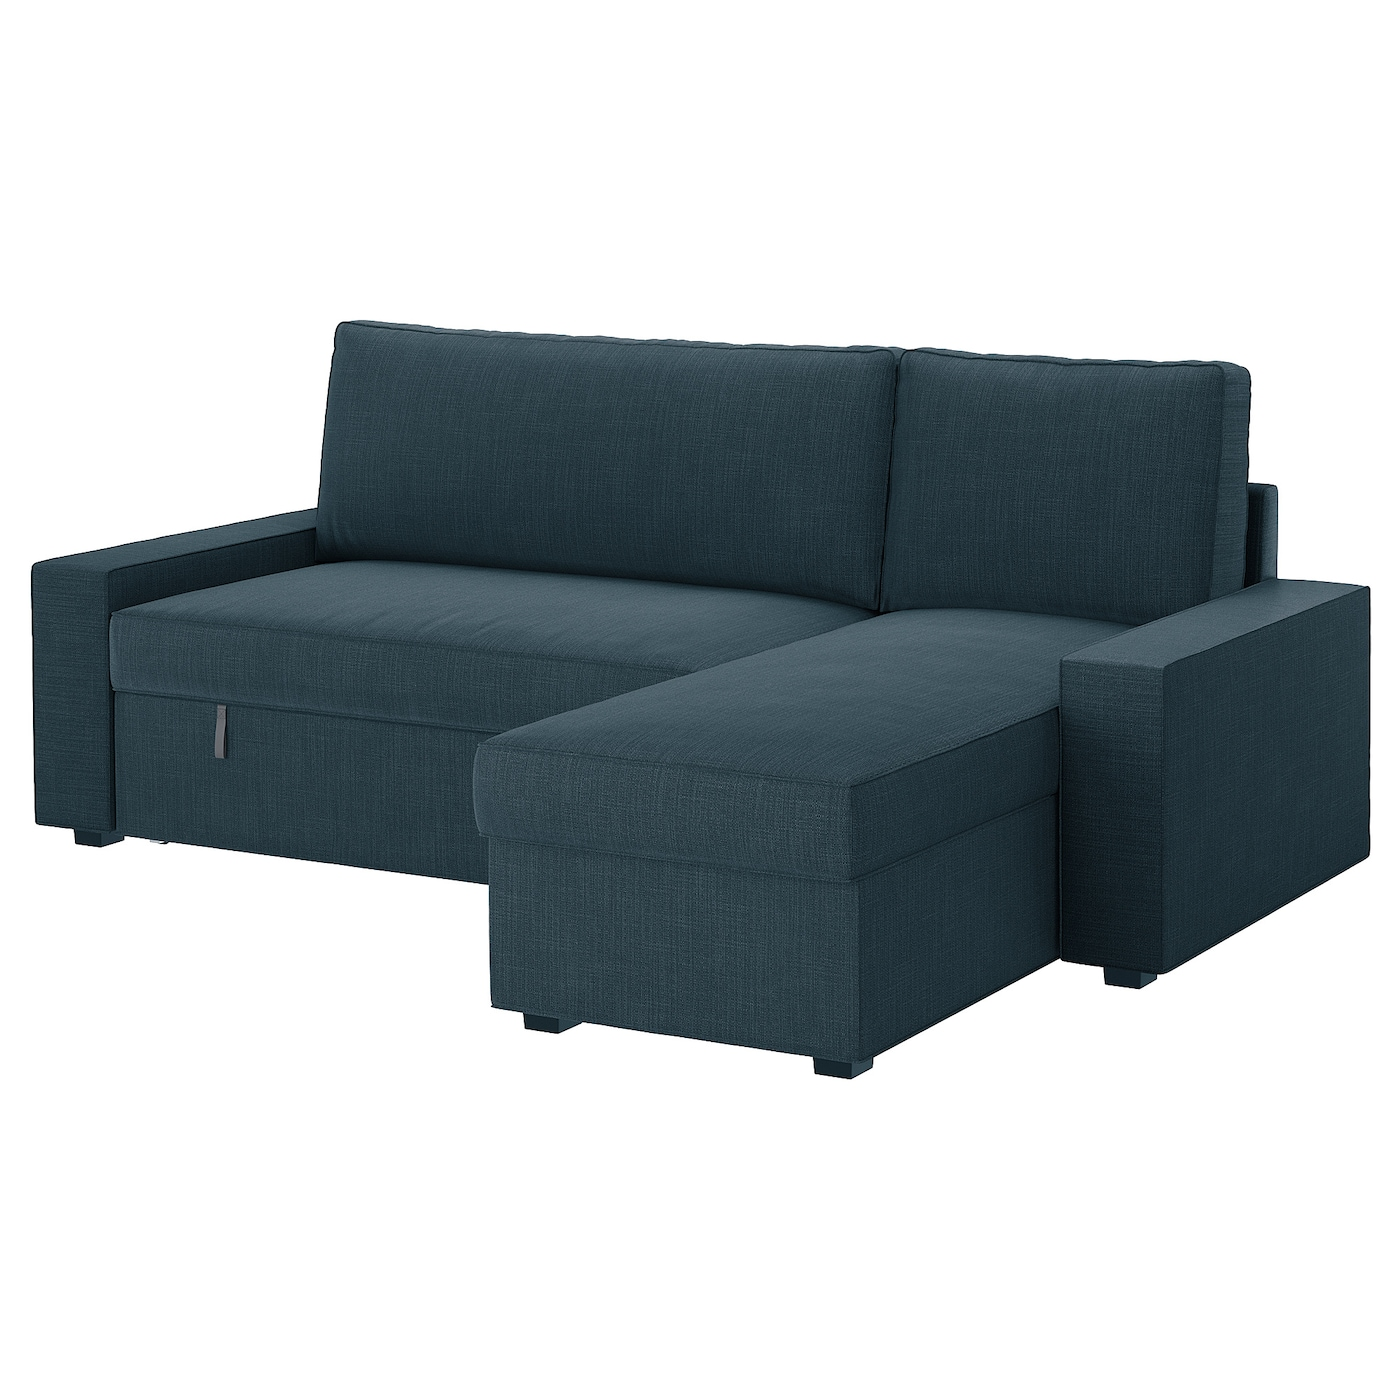 Vilasund sofa bed with chaise longue hillared dark blue ikea for Sofa cama chaise longue piel